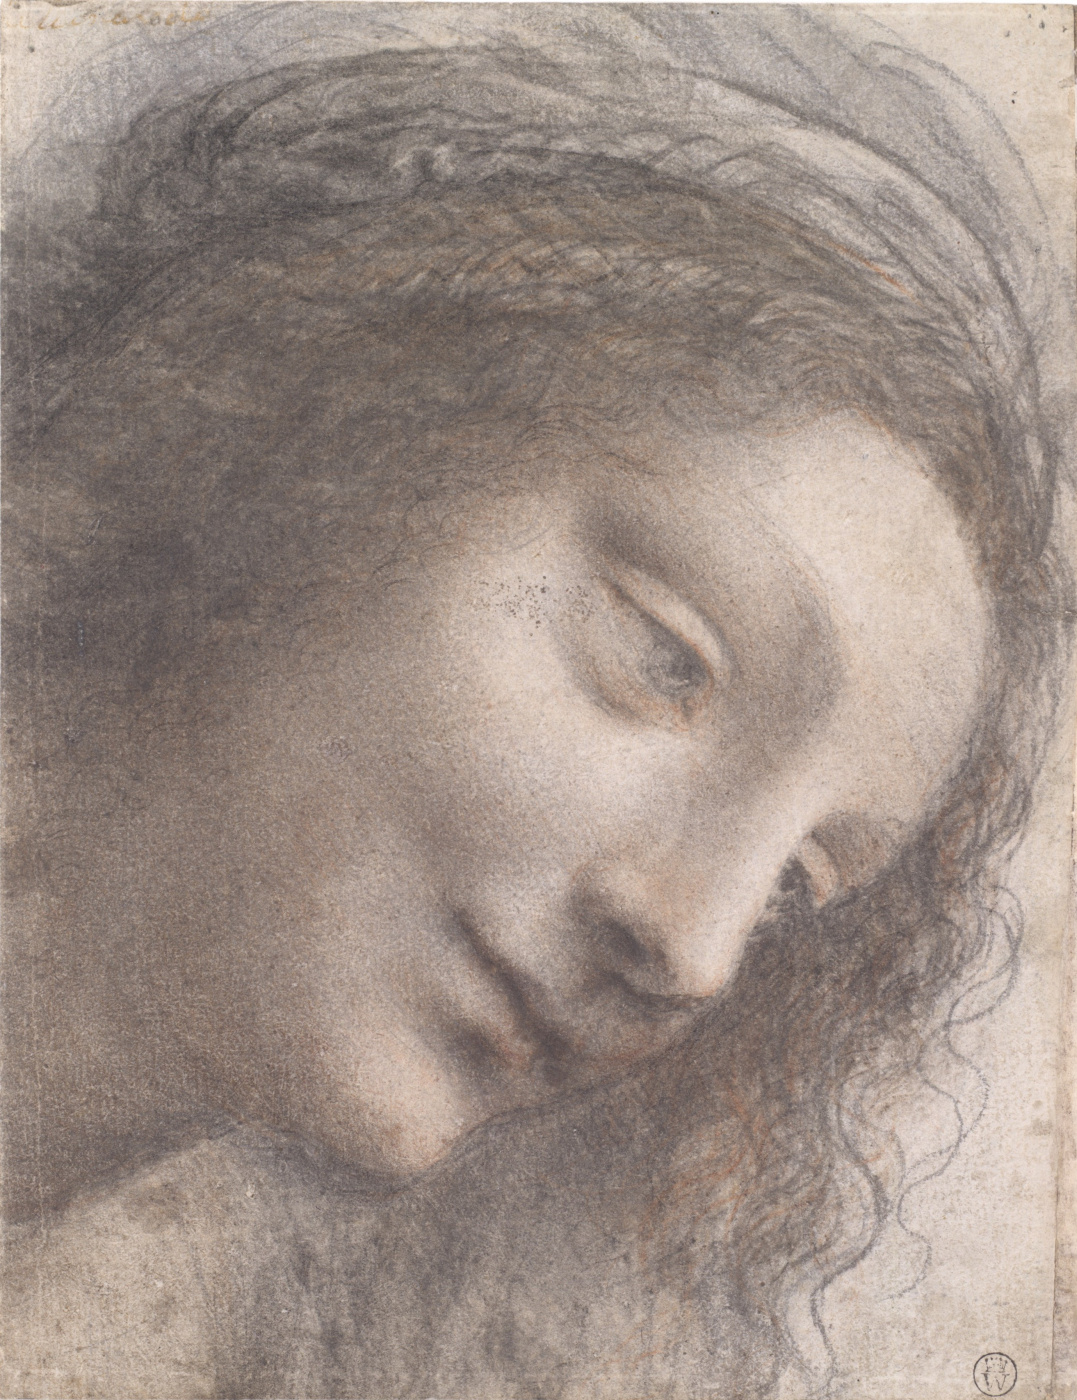 Leonardo da Vinci. The head of the Virgin in three quarters on the right side